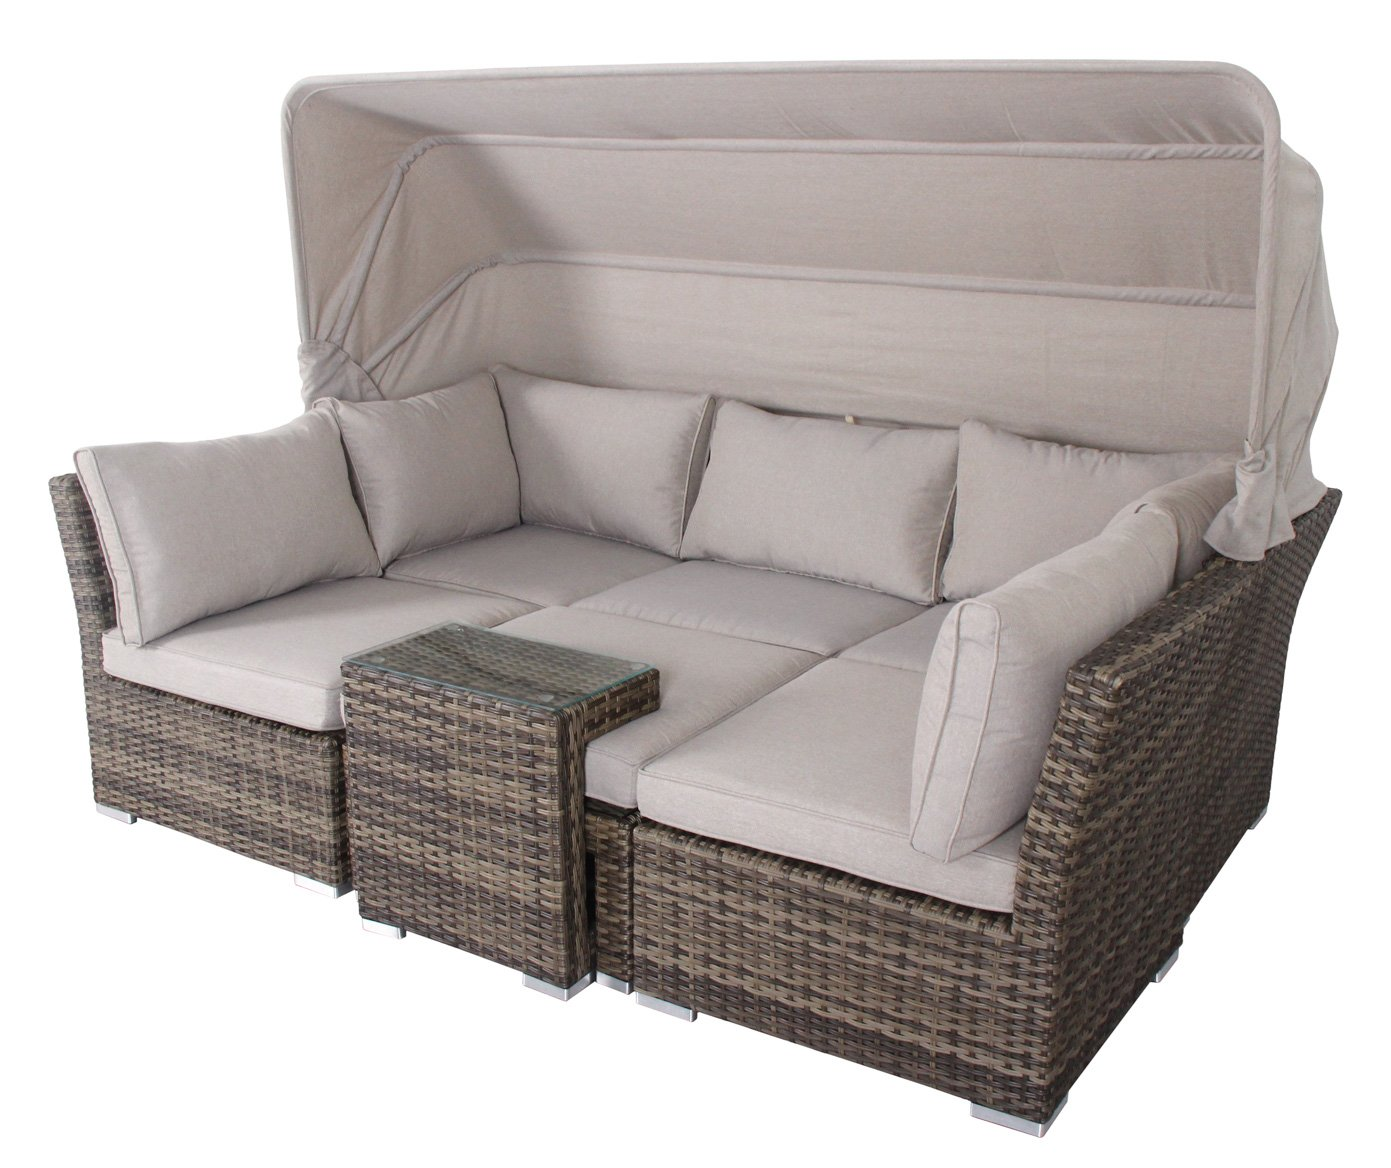 Rattan lounge set provence liege sitzgruppe bank in einem for Lounge set rattan gunstig